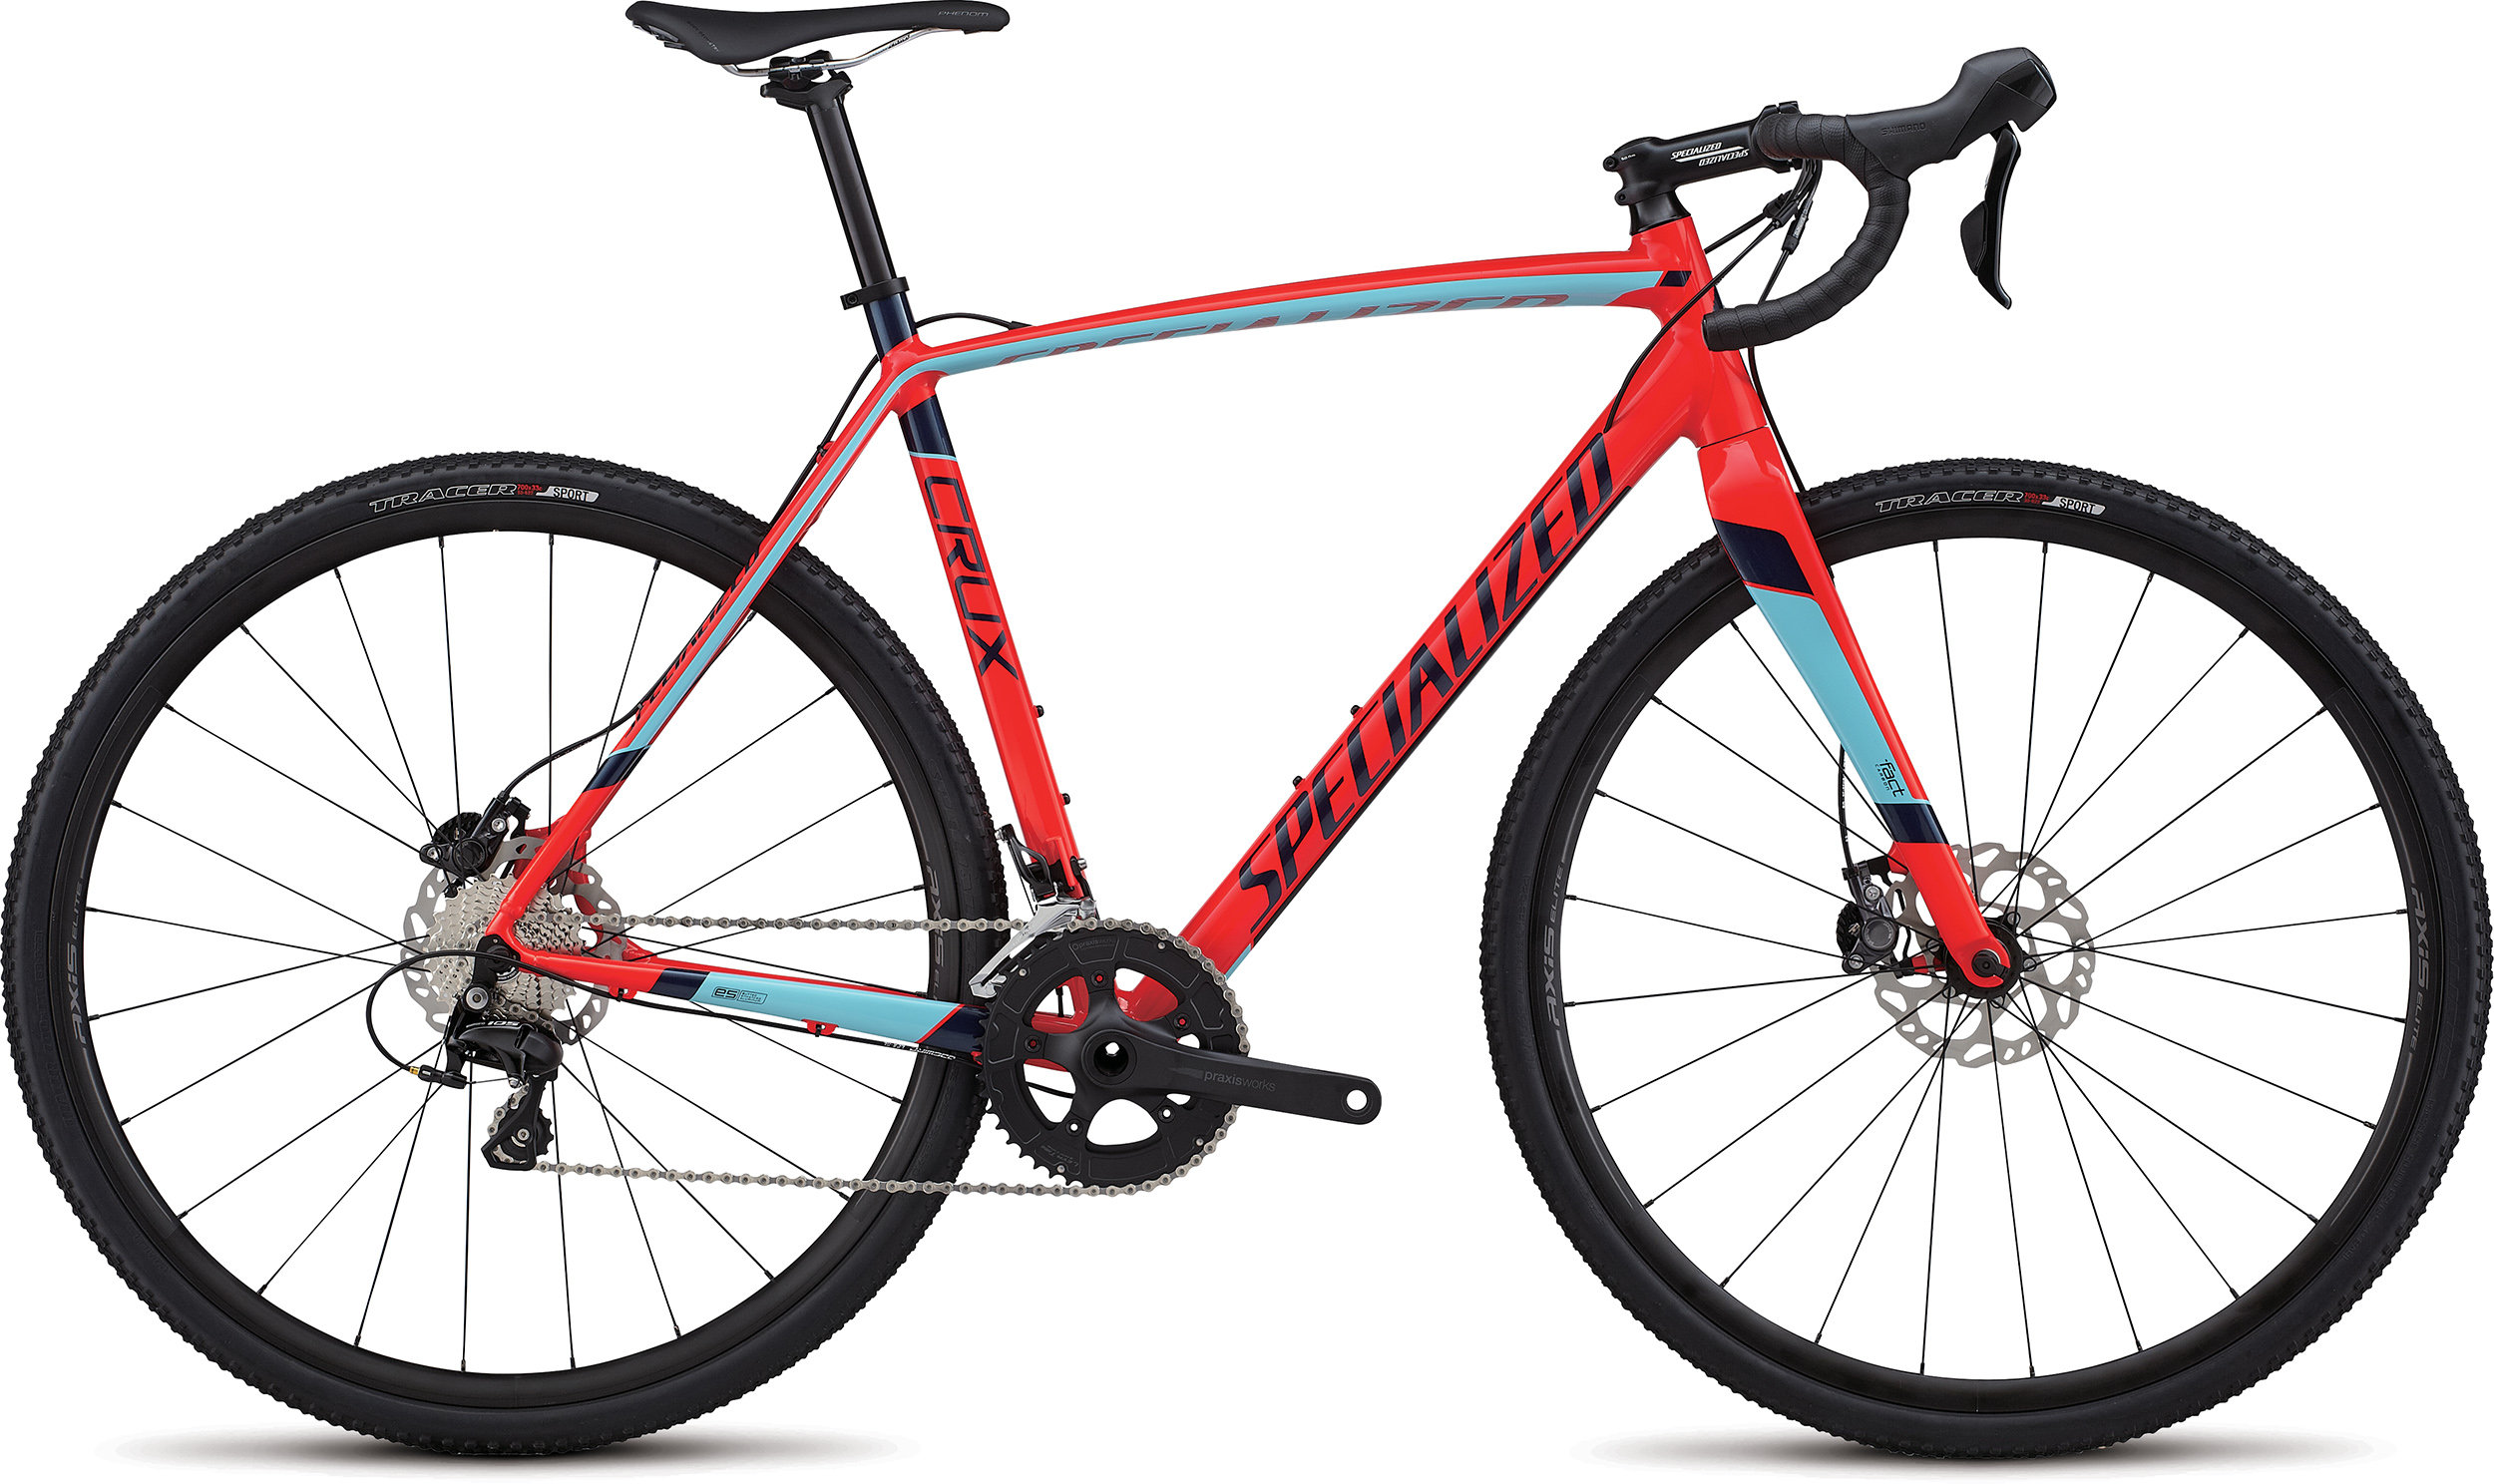 Specialized CruX Sport E5 GLOSS ROCKET RED/ LIGHT BLUE/ NAVY 58 - Specialized CruX Sport E5 GLOSS ROCKET RED/ LIGHT BLUE/ NAVY 58